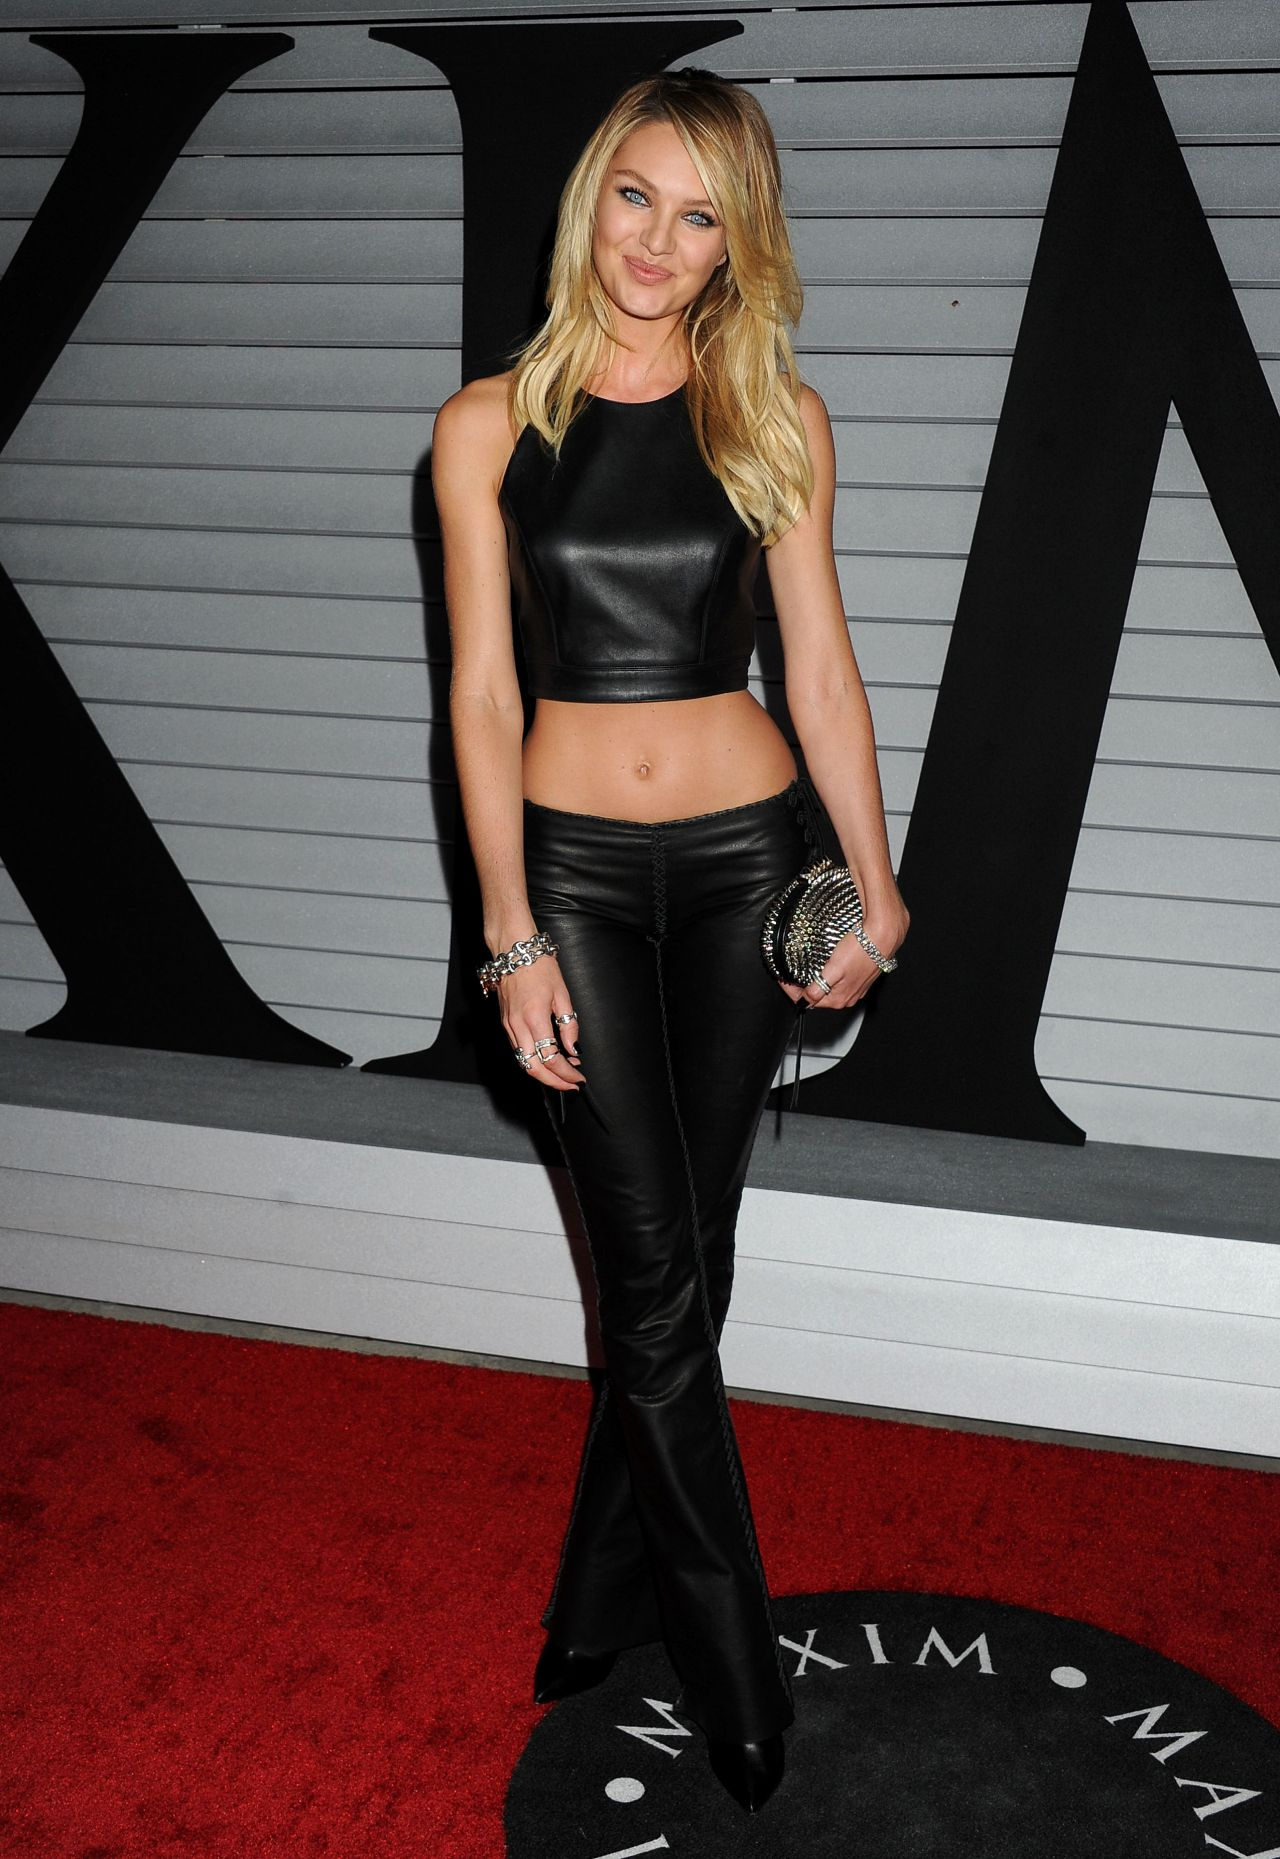 Candice Swanepoel - Maxim's Hot 100 Women of 2014 Celebration in West Hollywood